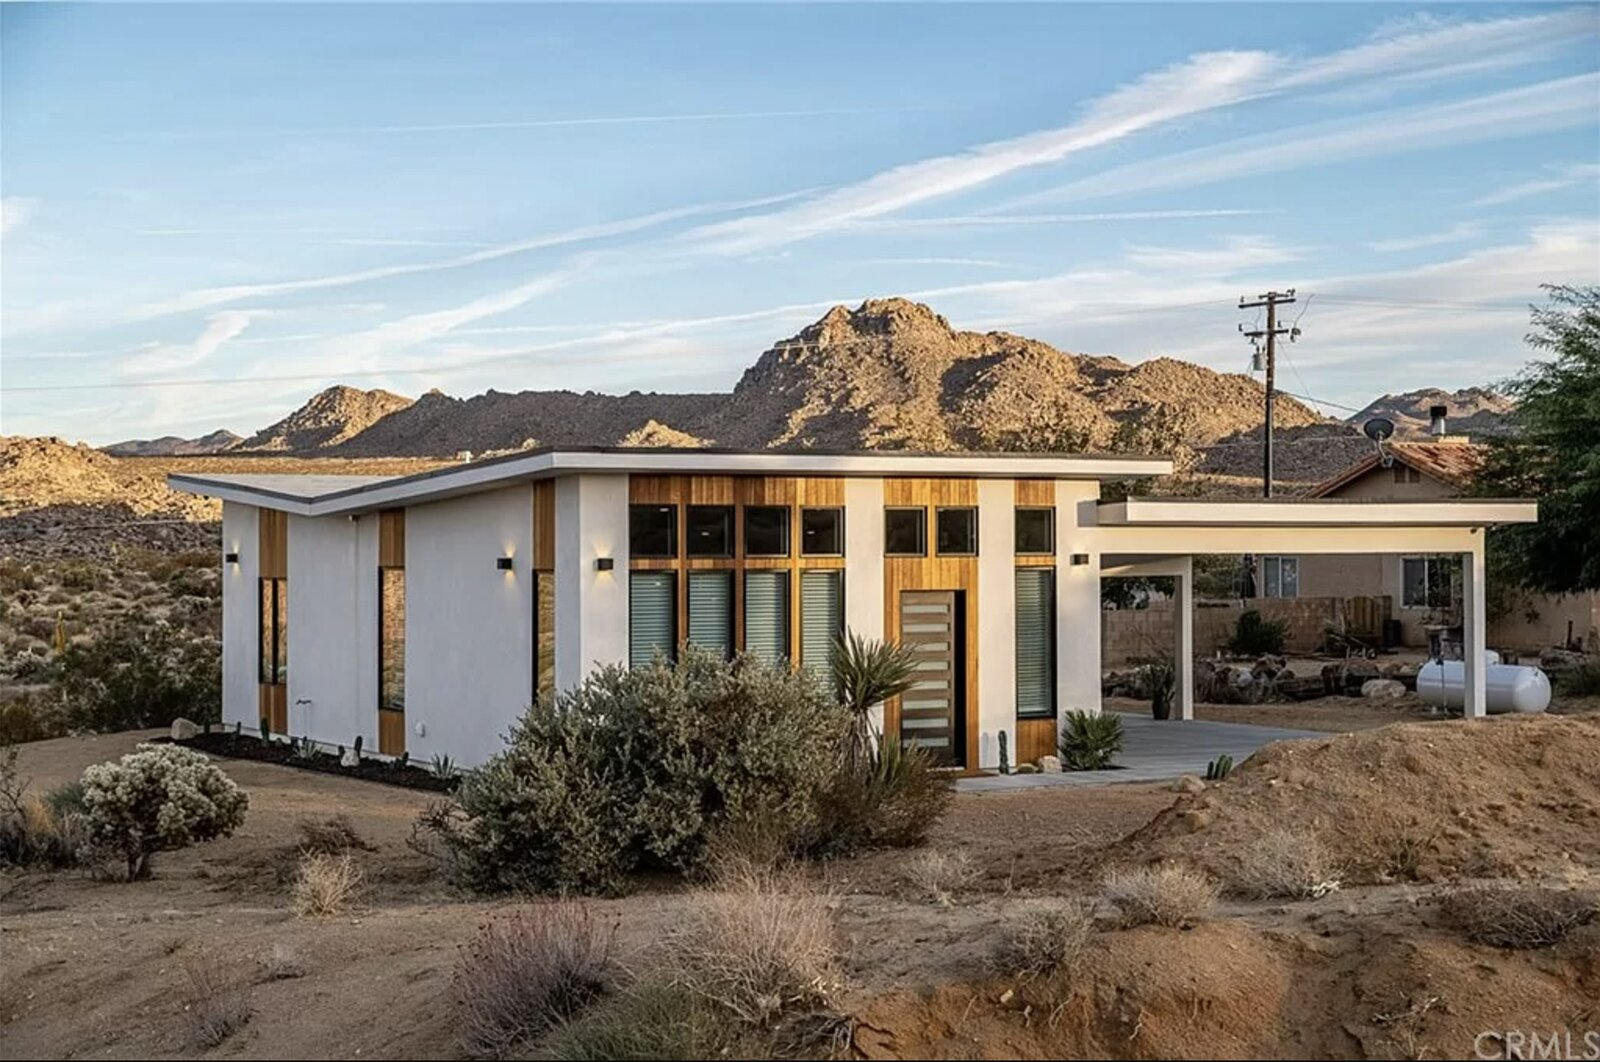 Move Into This Cheery, Butterfly-Roofed Cabin in Joshua Tree for $650K